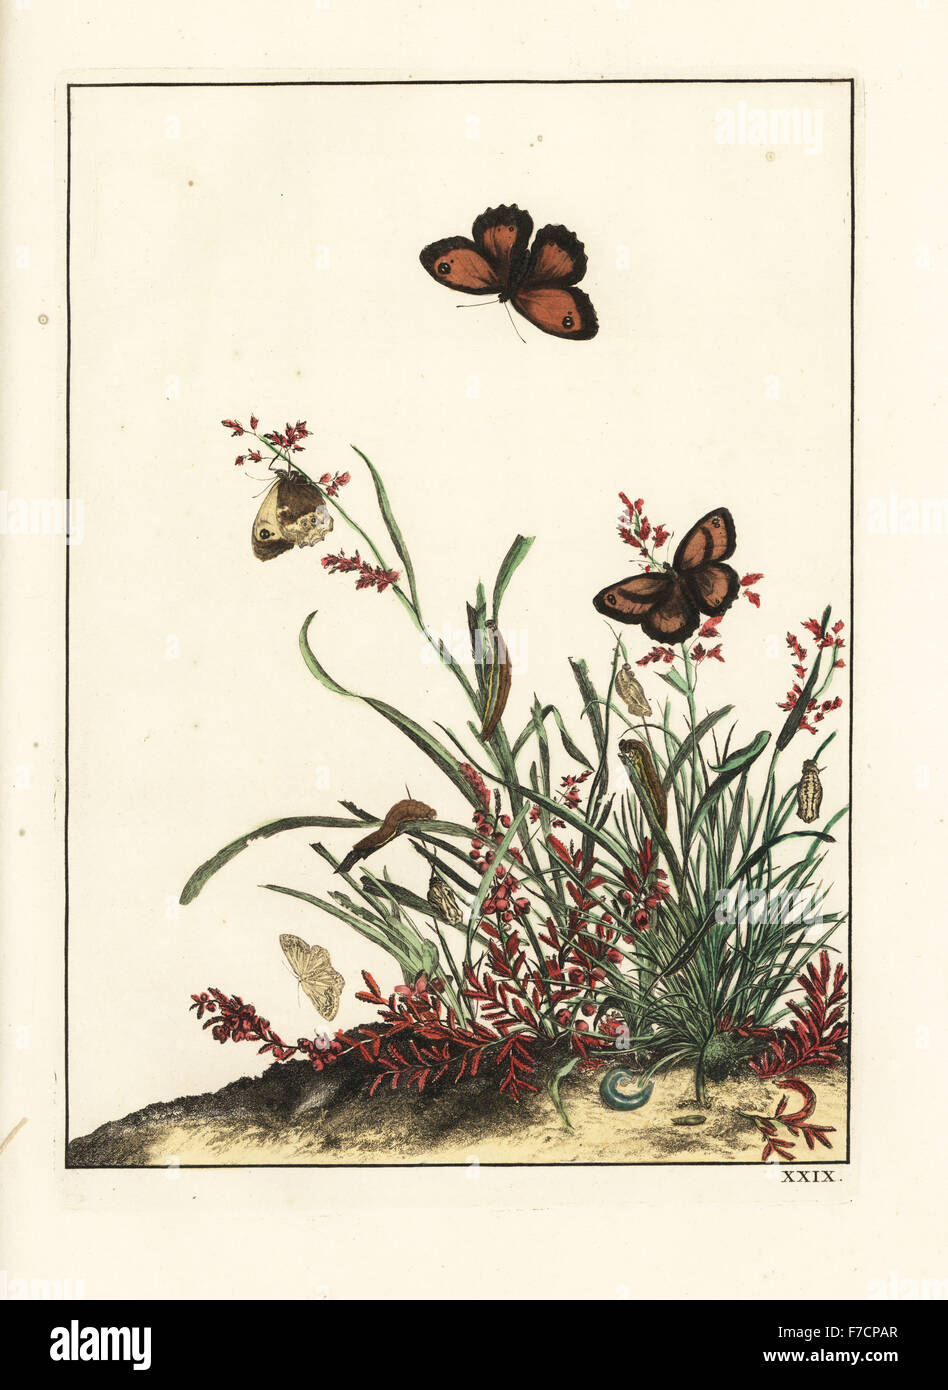 Gatekeeper butterfly, Pyronia tithonus, on grasses. Handcoloured copperplate engraving drawn and etched by Jacob - Stock Image